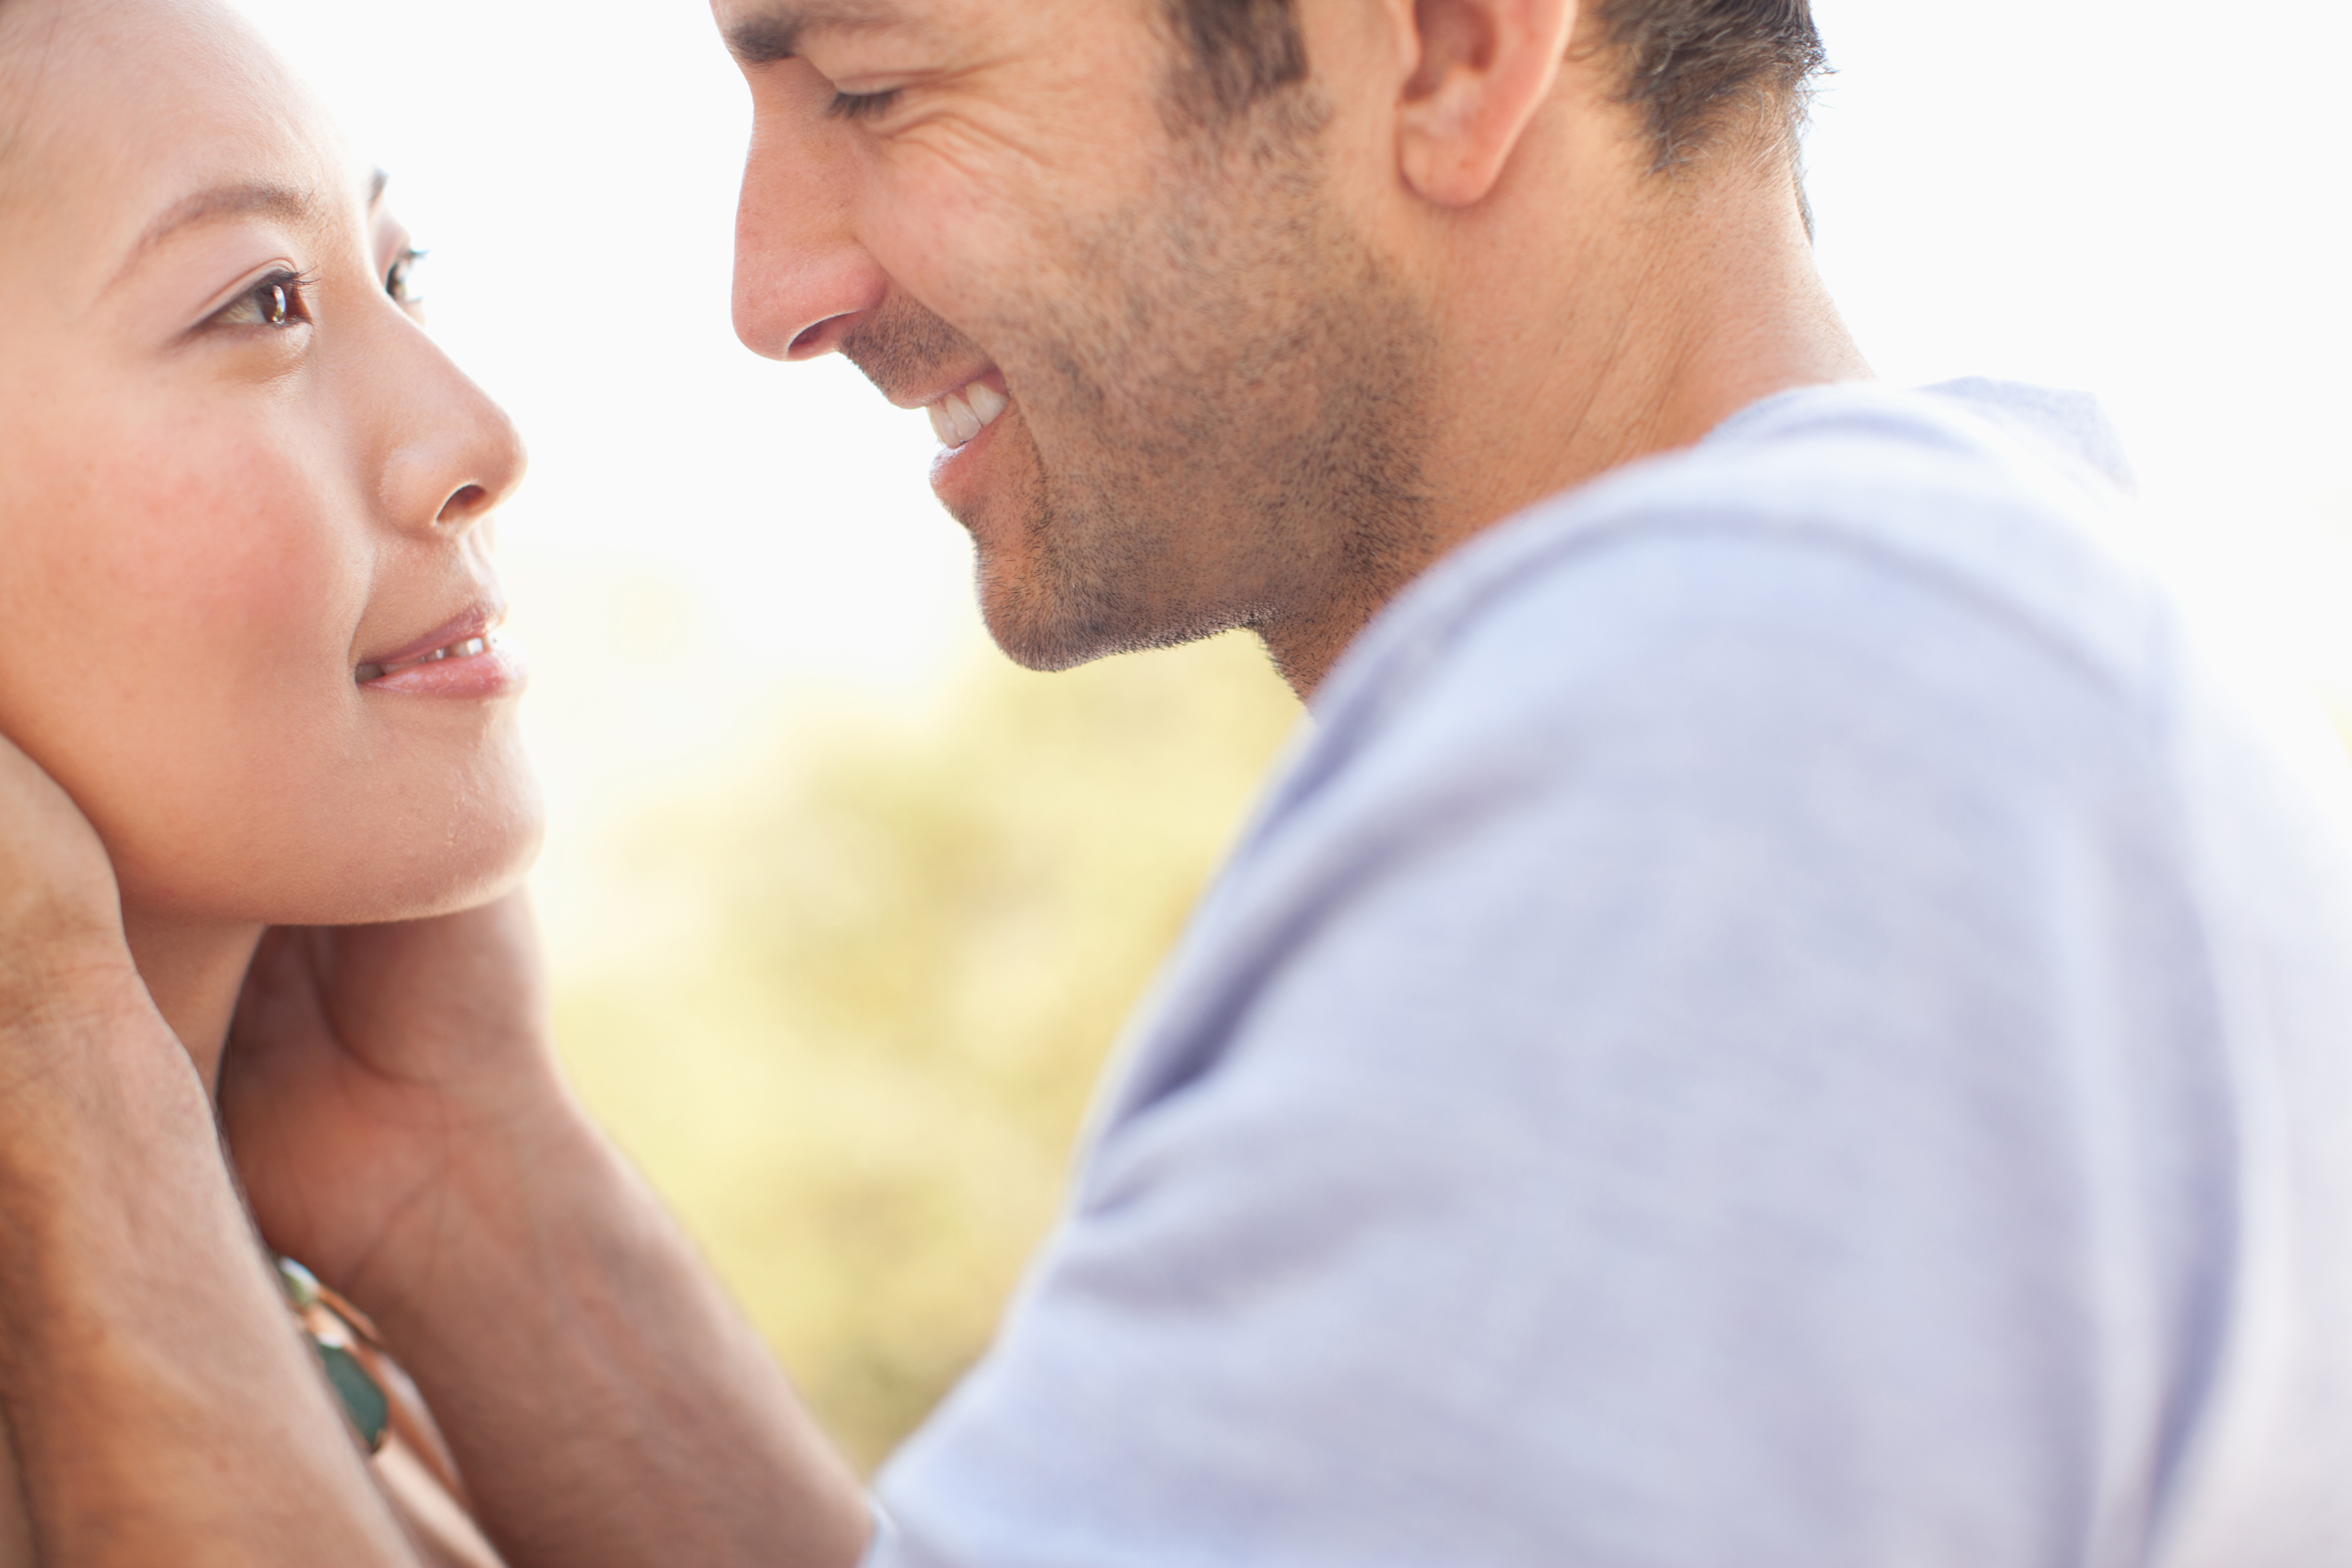 A close-up of a smiling couple is shown.